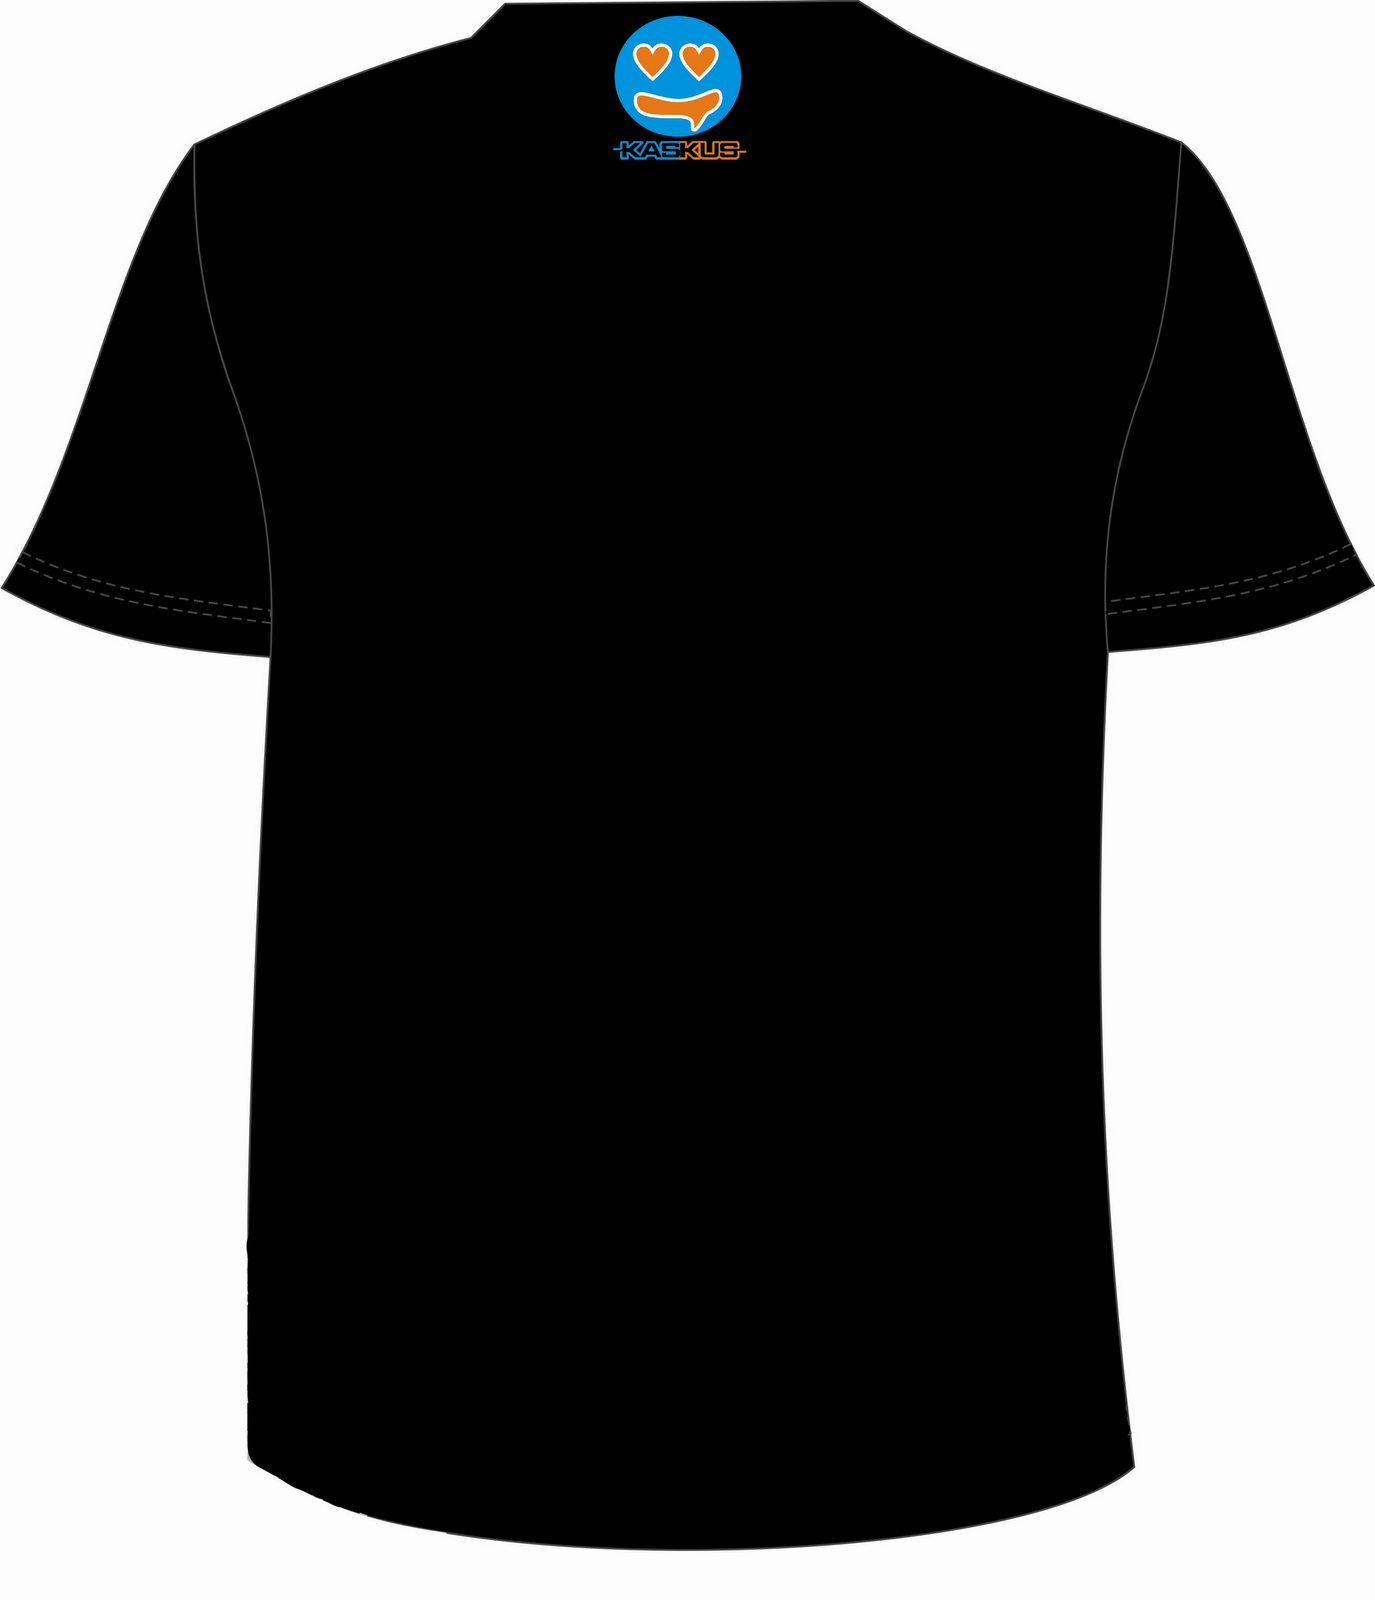 photoshop kaos black belakang